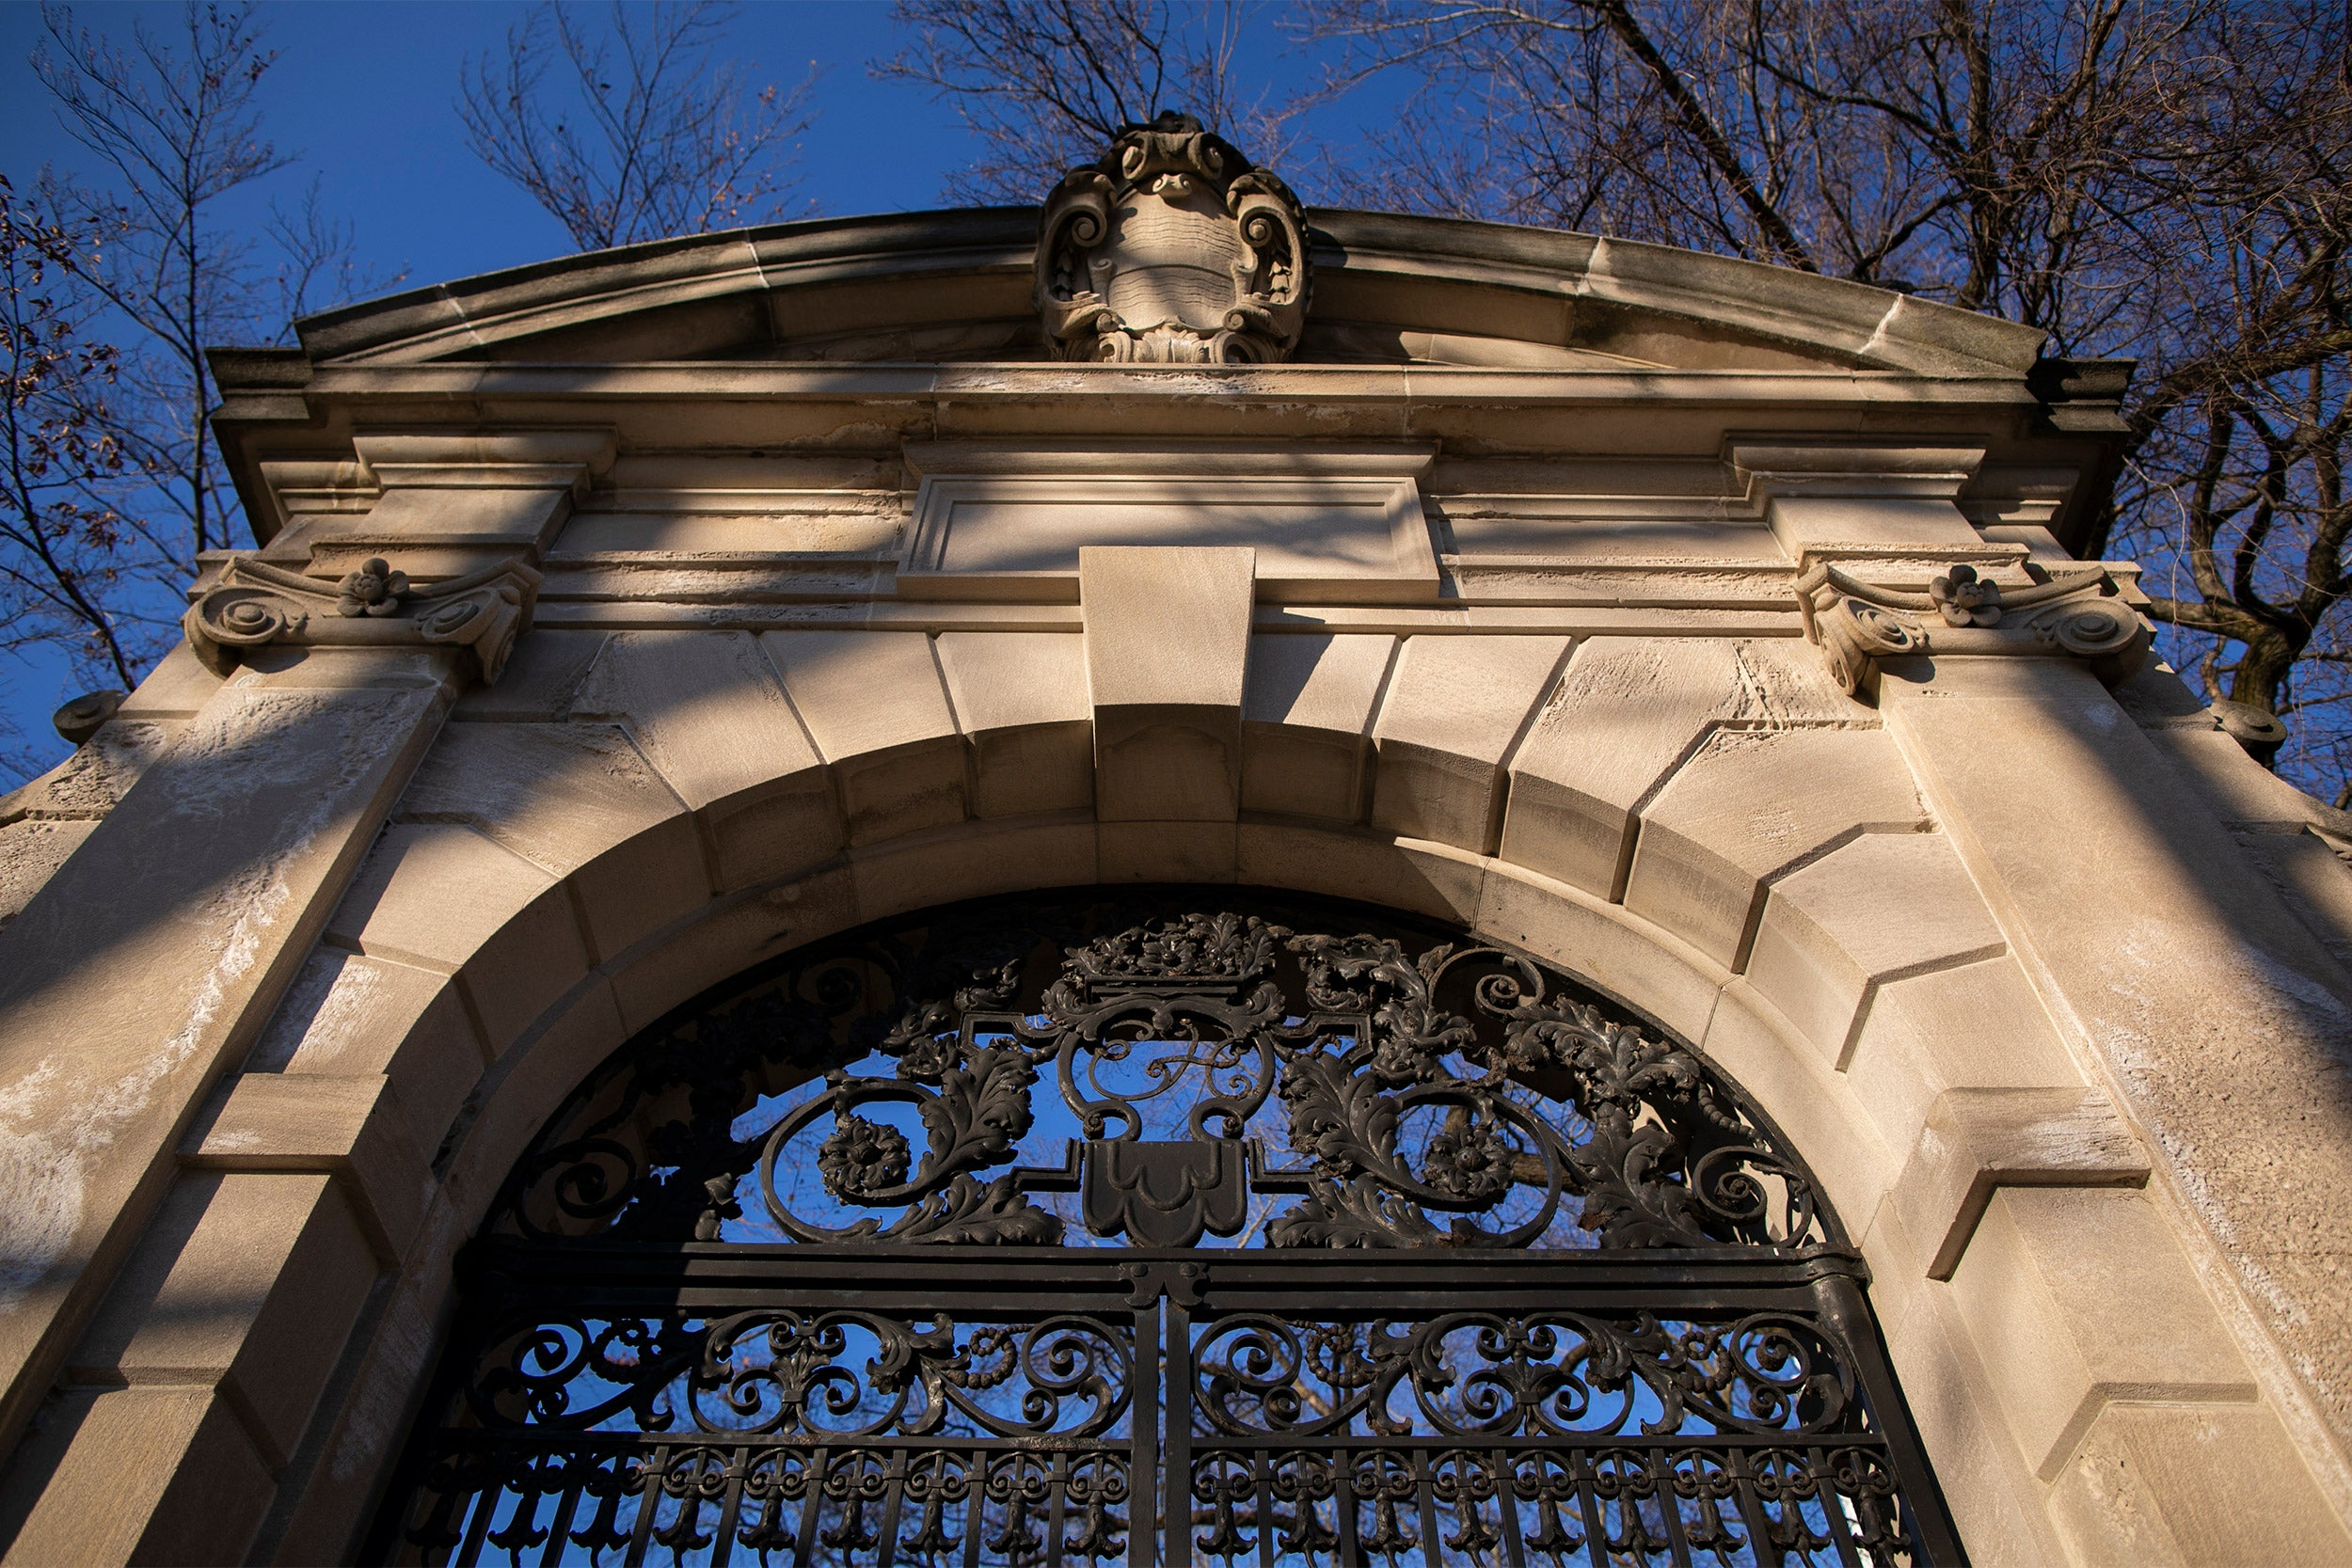 One of Harvard's many ornate gates.